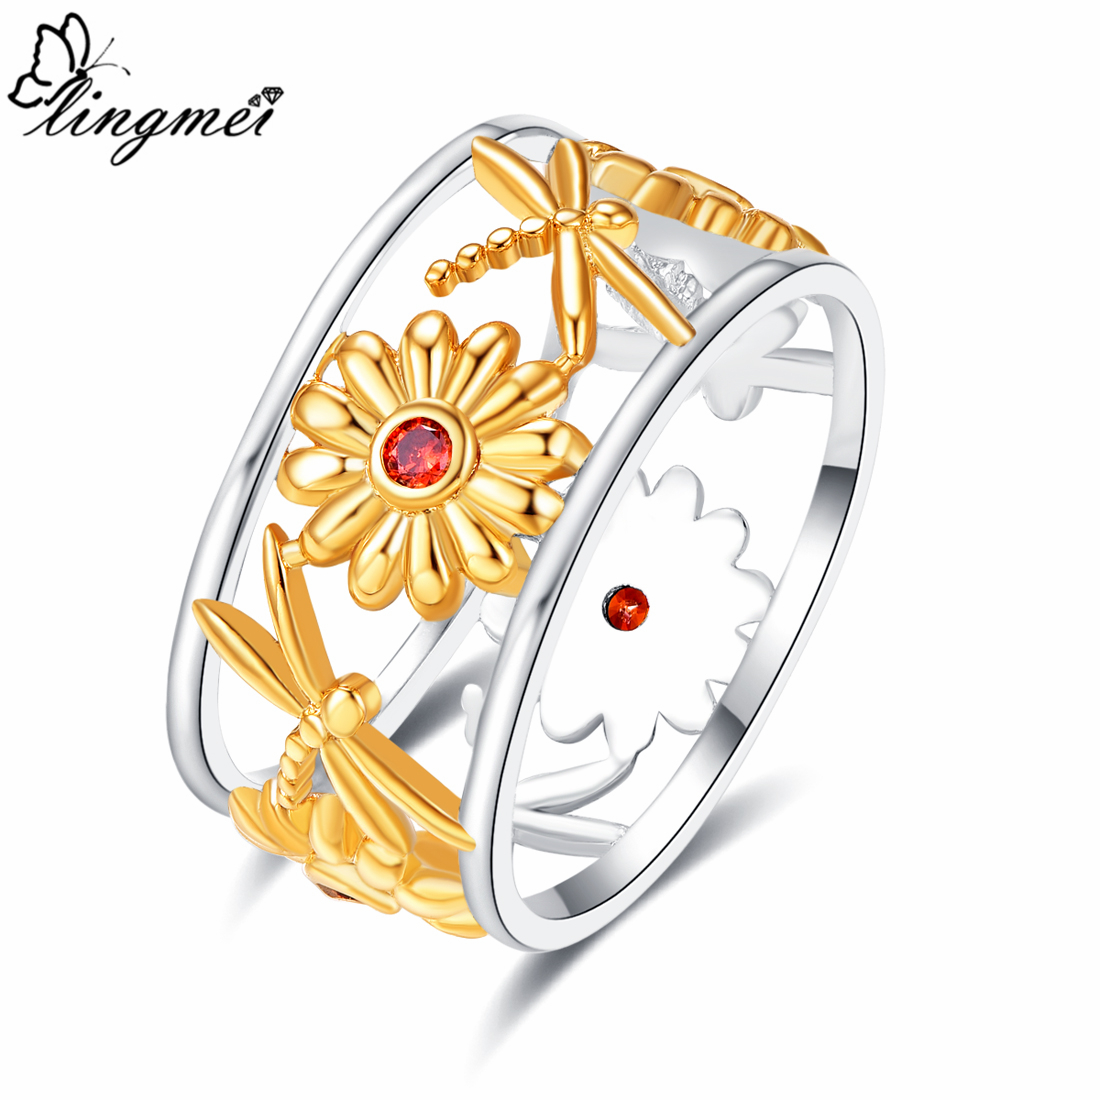 Lingmei Wedding Flower Exquisite Jewelry Bohemia Style Red Cubic